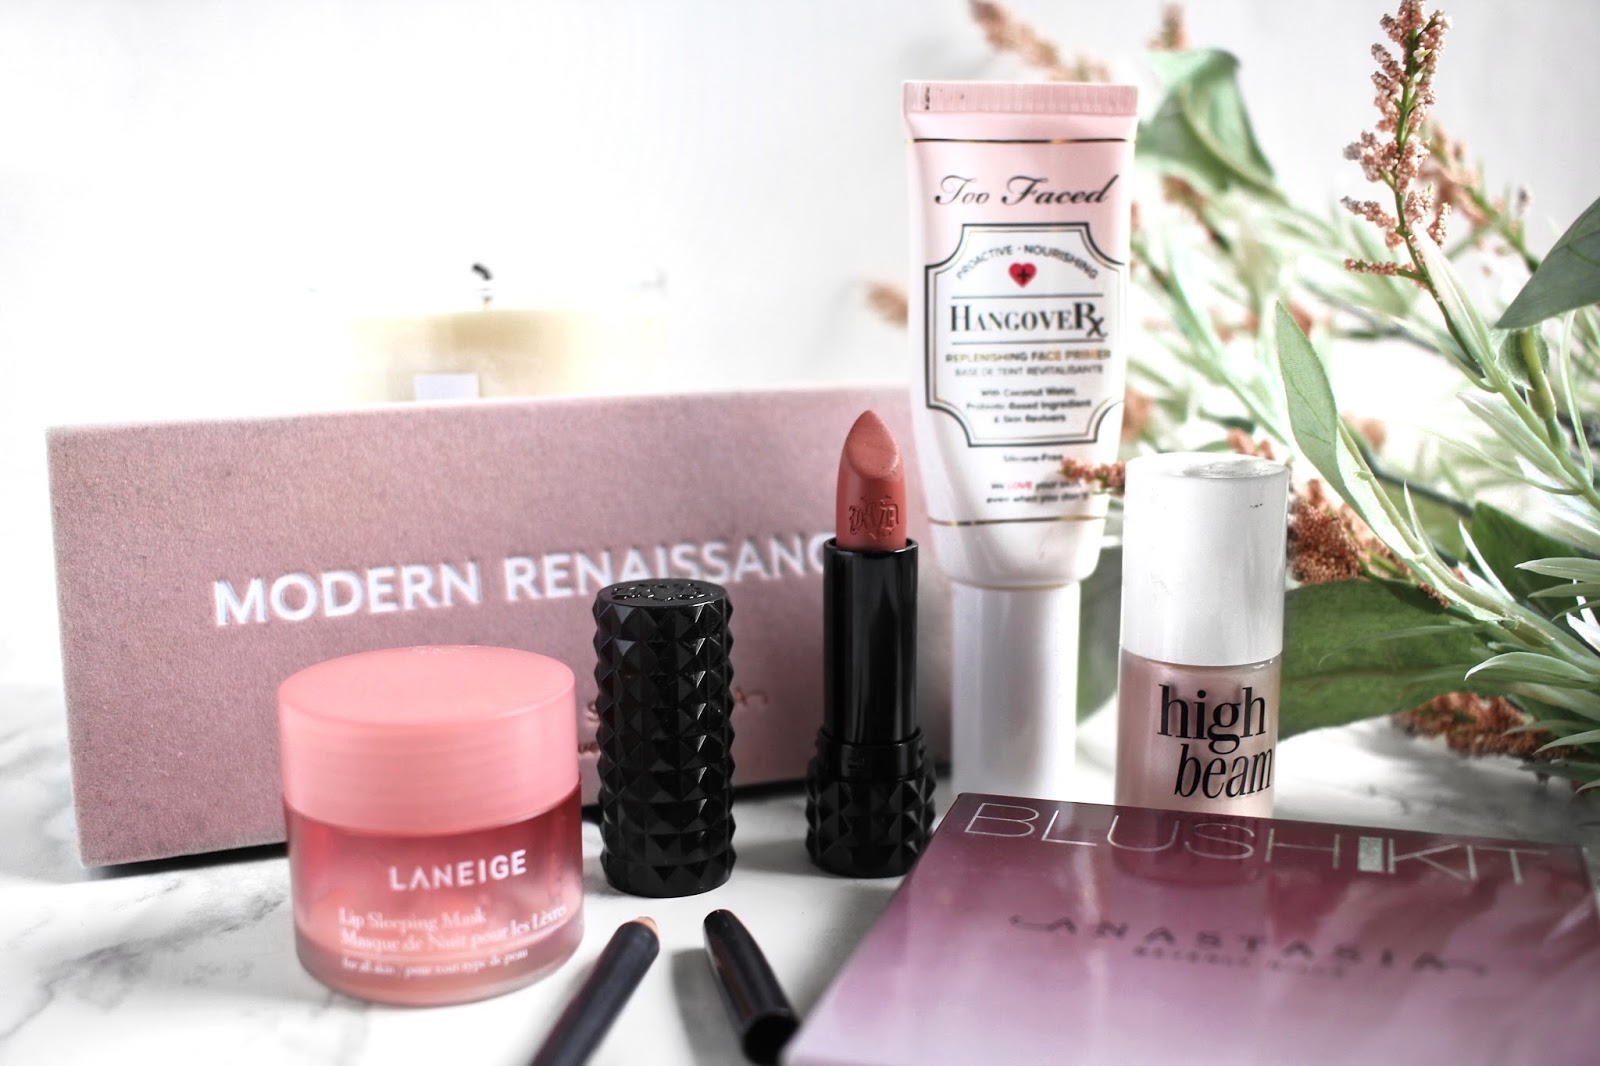 A Very Pink February ft. Anastasia Beverly Hills, Laneige, Kat Von D, Too Faced, Benefit, MAC    The Glam Surge